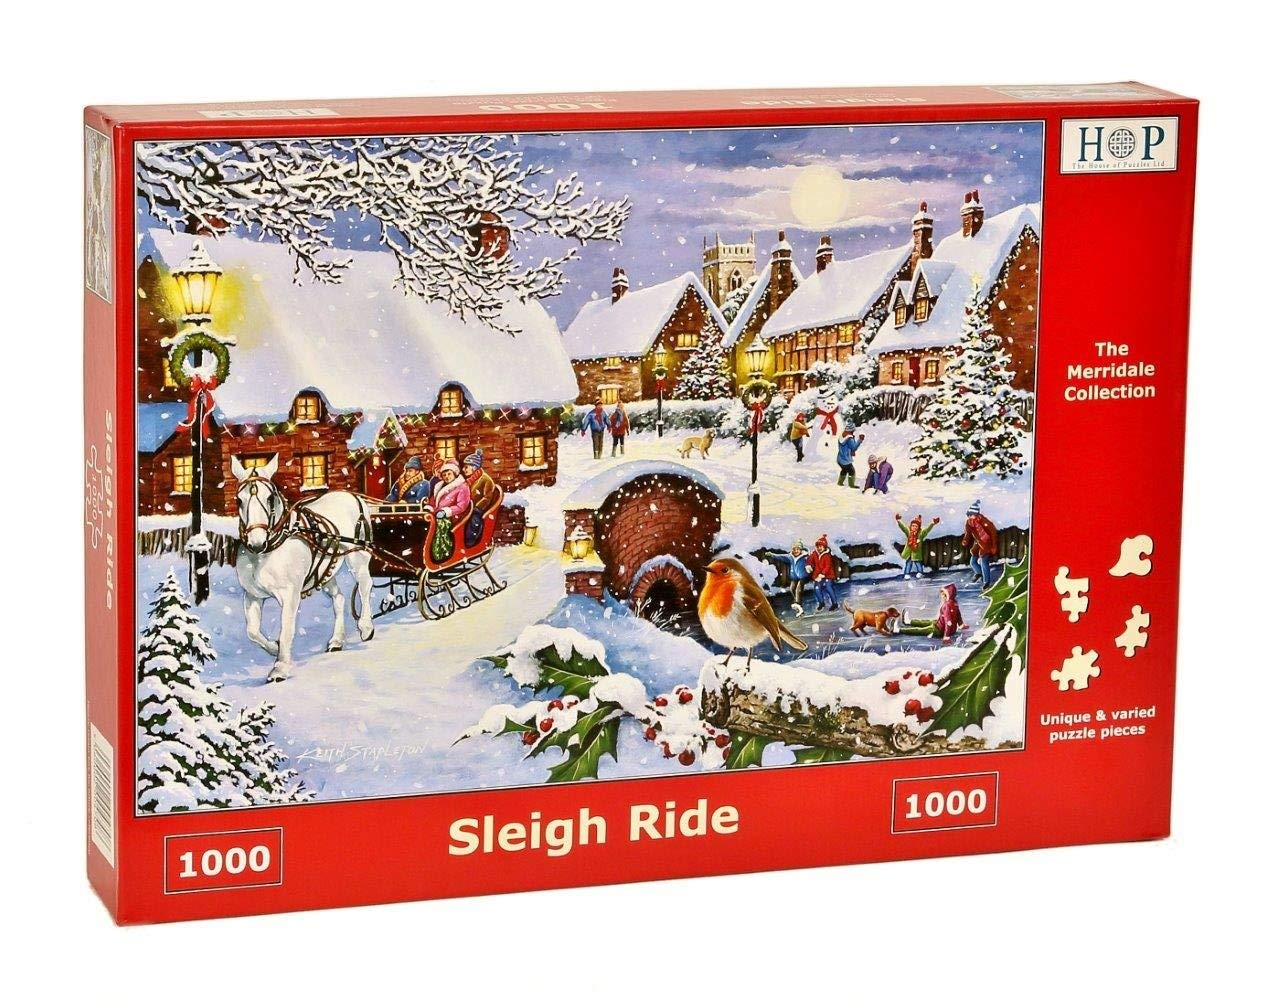 Sleigh Ride, 1000pce, Puzzle